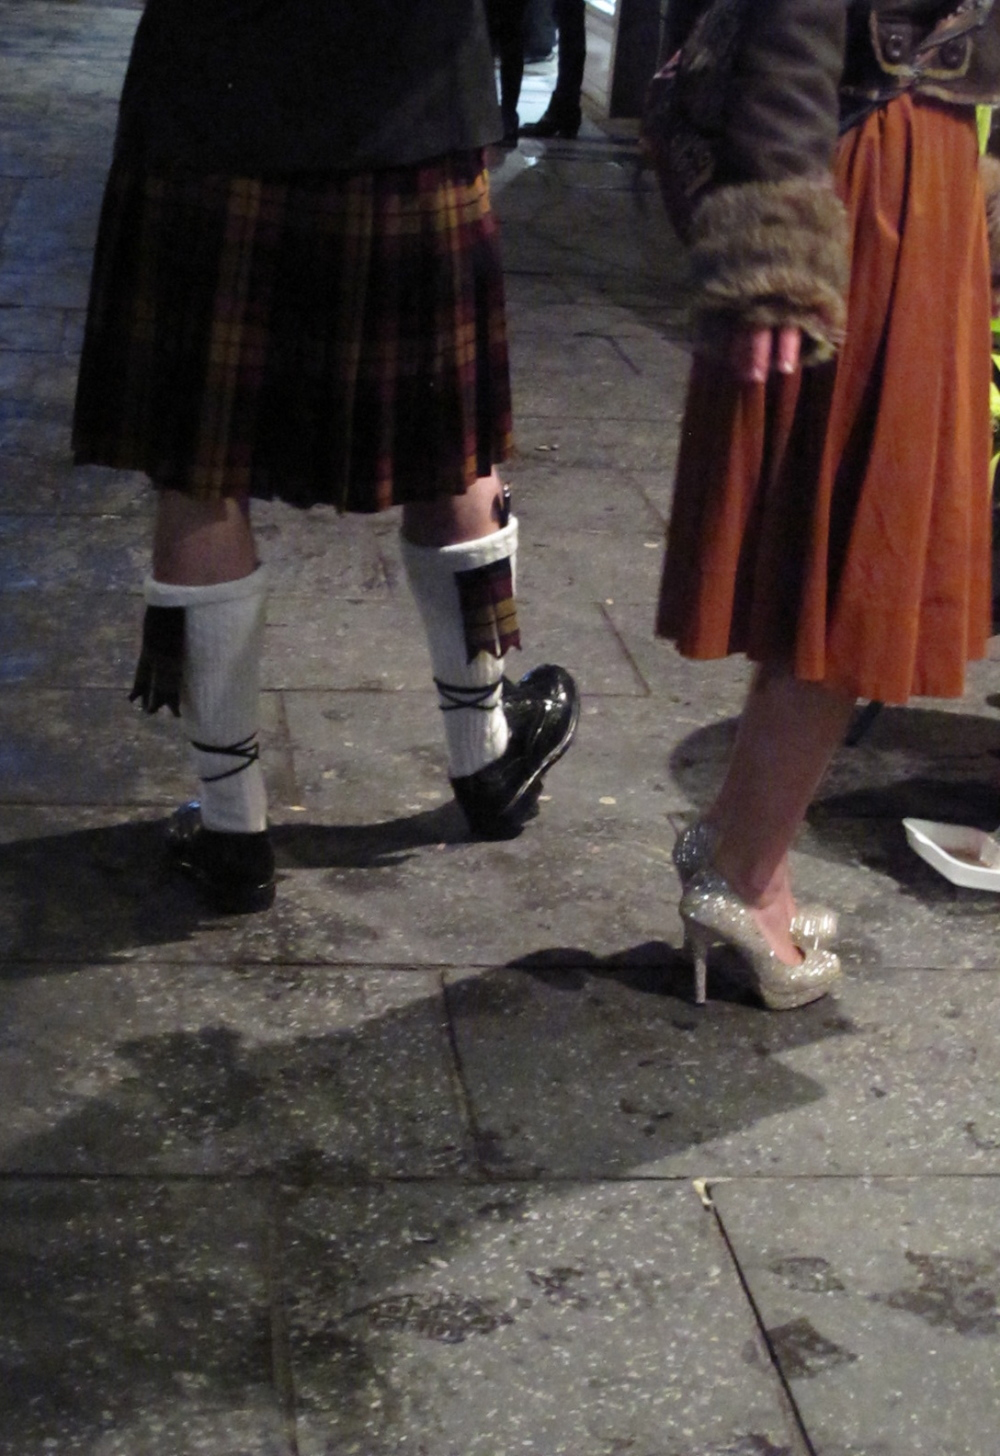 Kilts and dresses at a ceilidh on St Andrew's day.